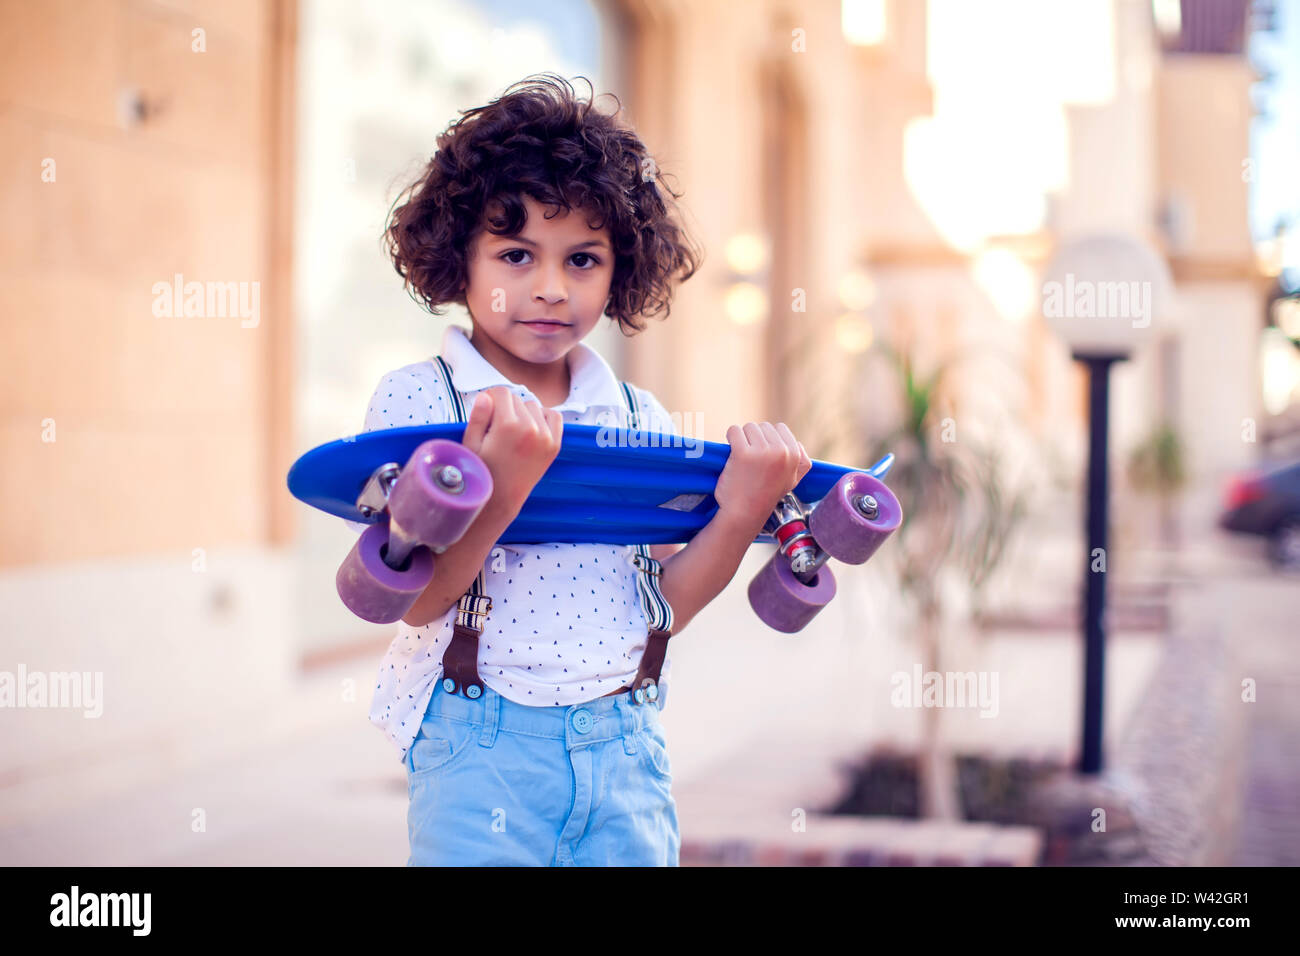 Little Boy With Curly Hair With Skateboard Outdoor Children And Entertainment Concept Stock Photo Alamy